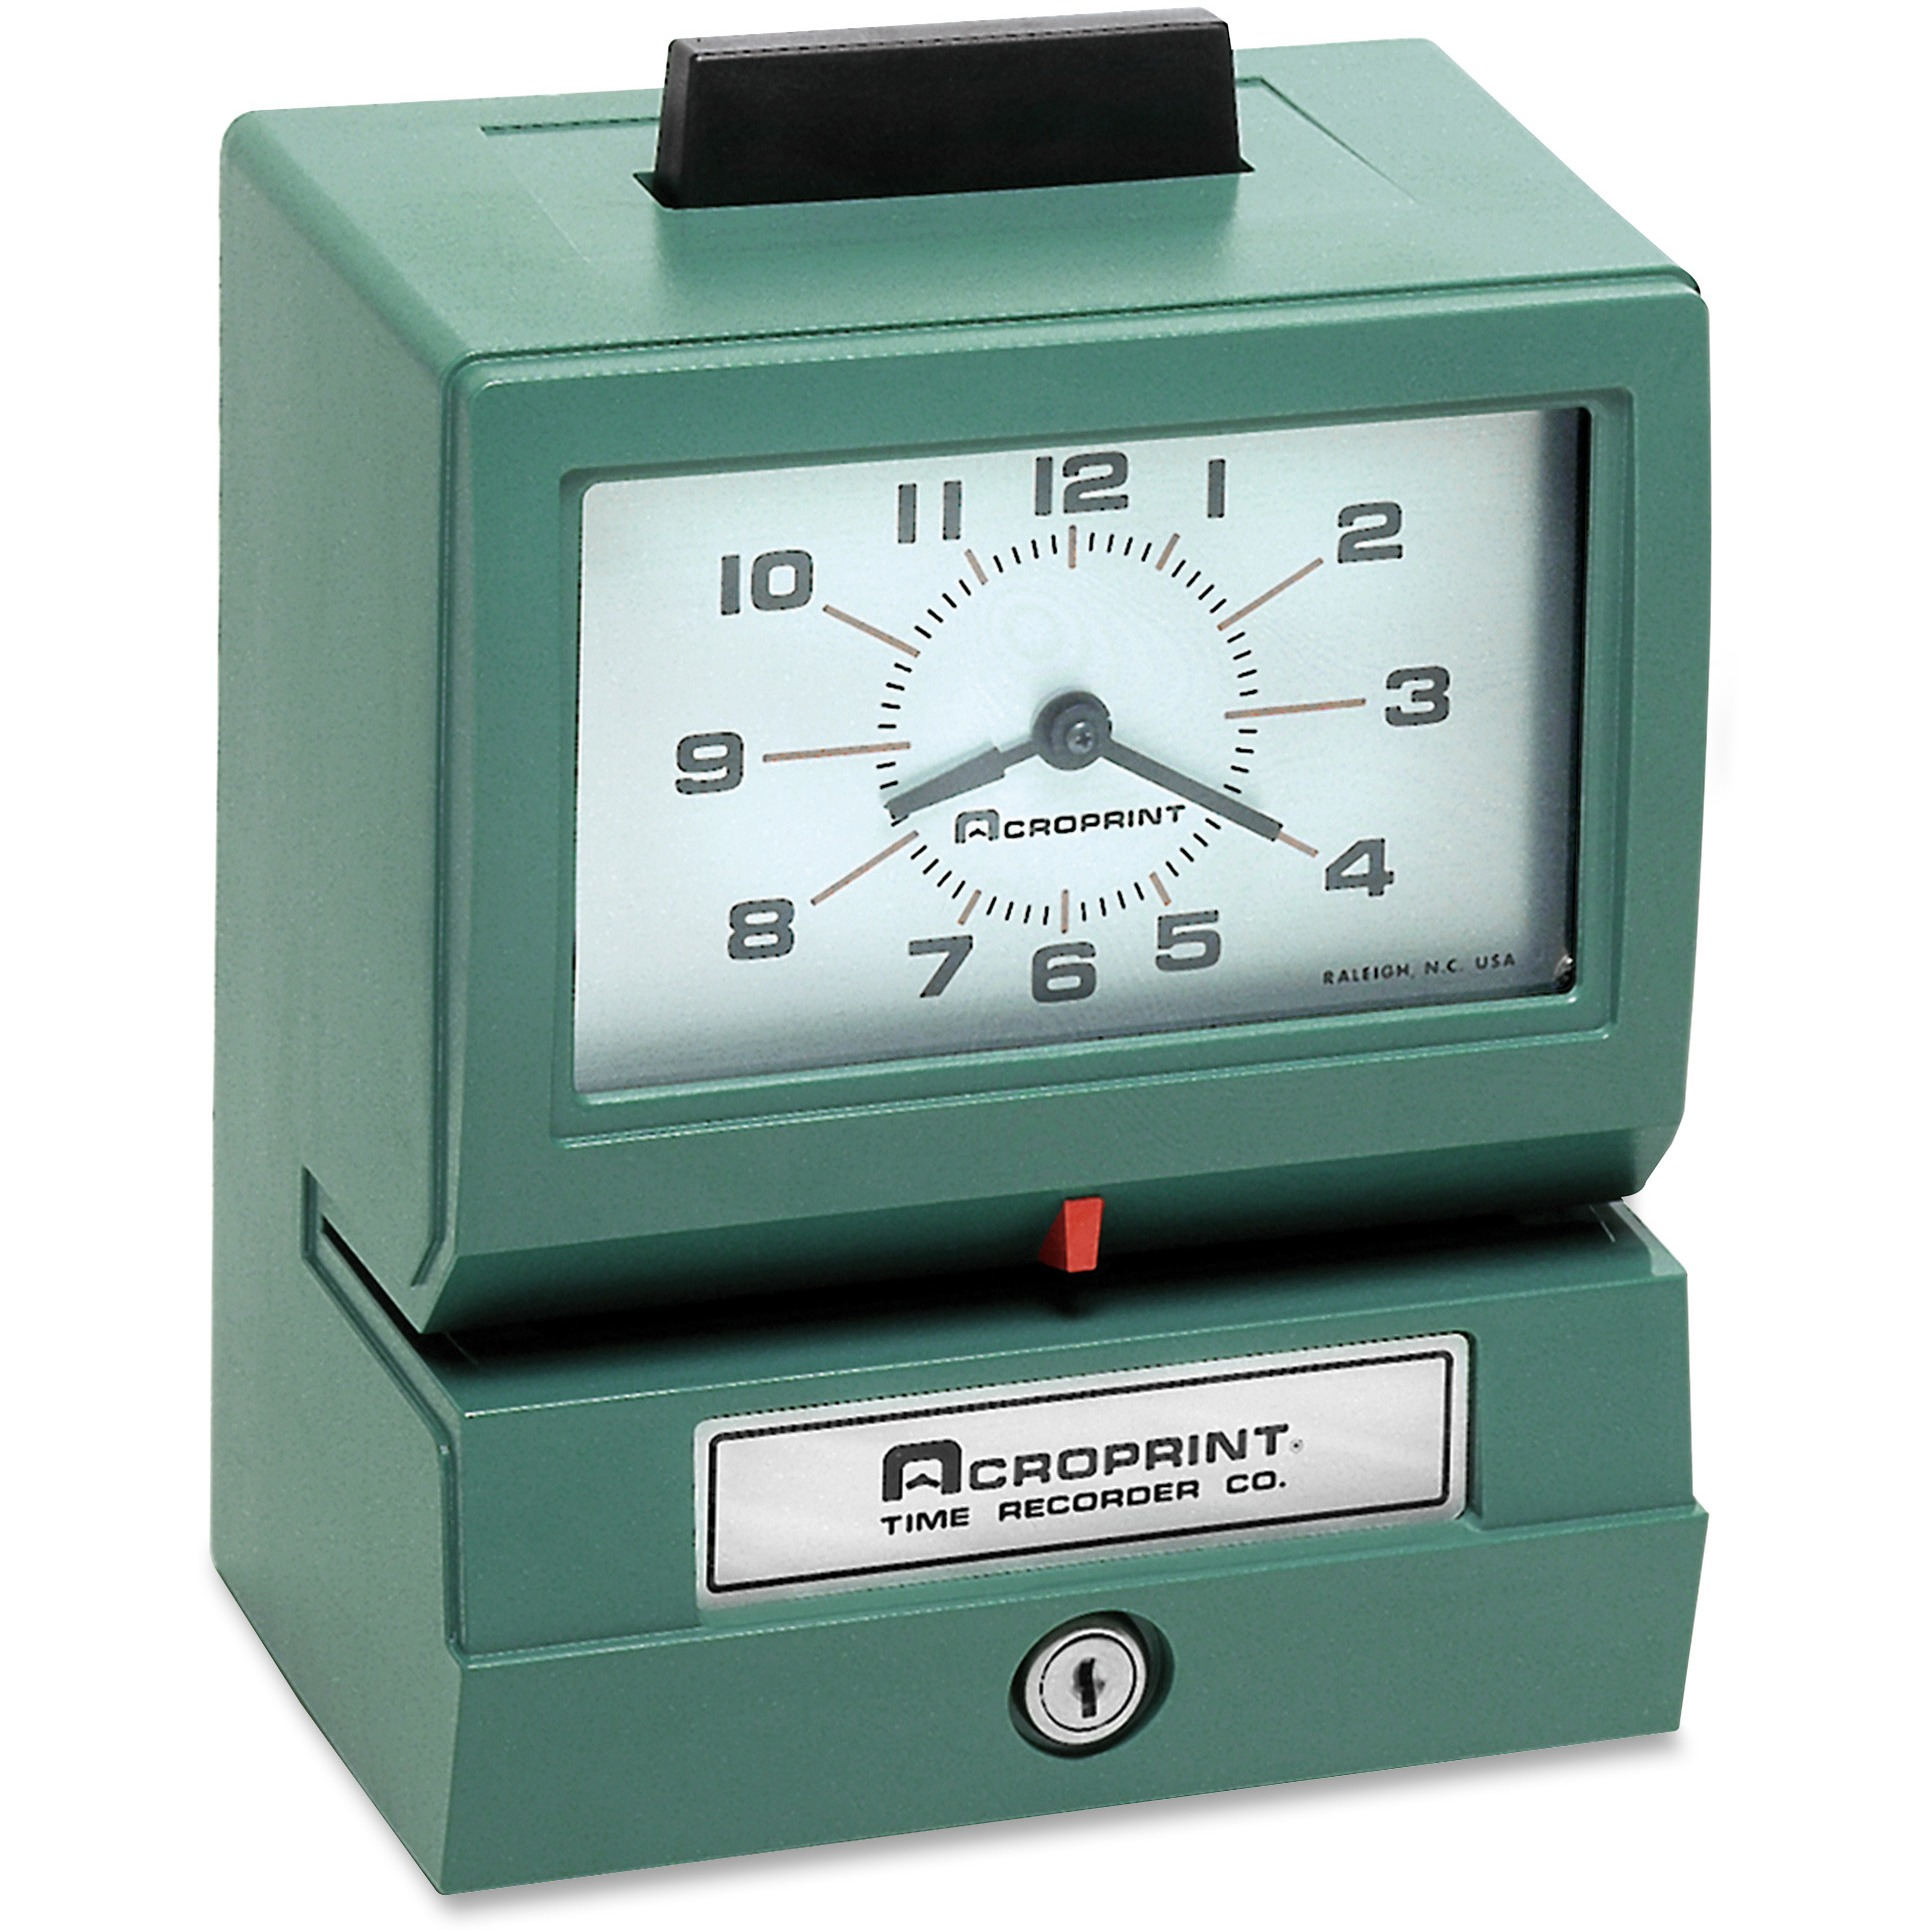 Acroprint Model 125 Analog Manual Print Time Clock with Month Date 0-12 Hours Minutes by Acroprint Time Recorder Company